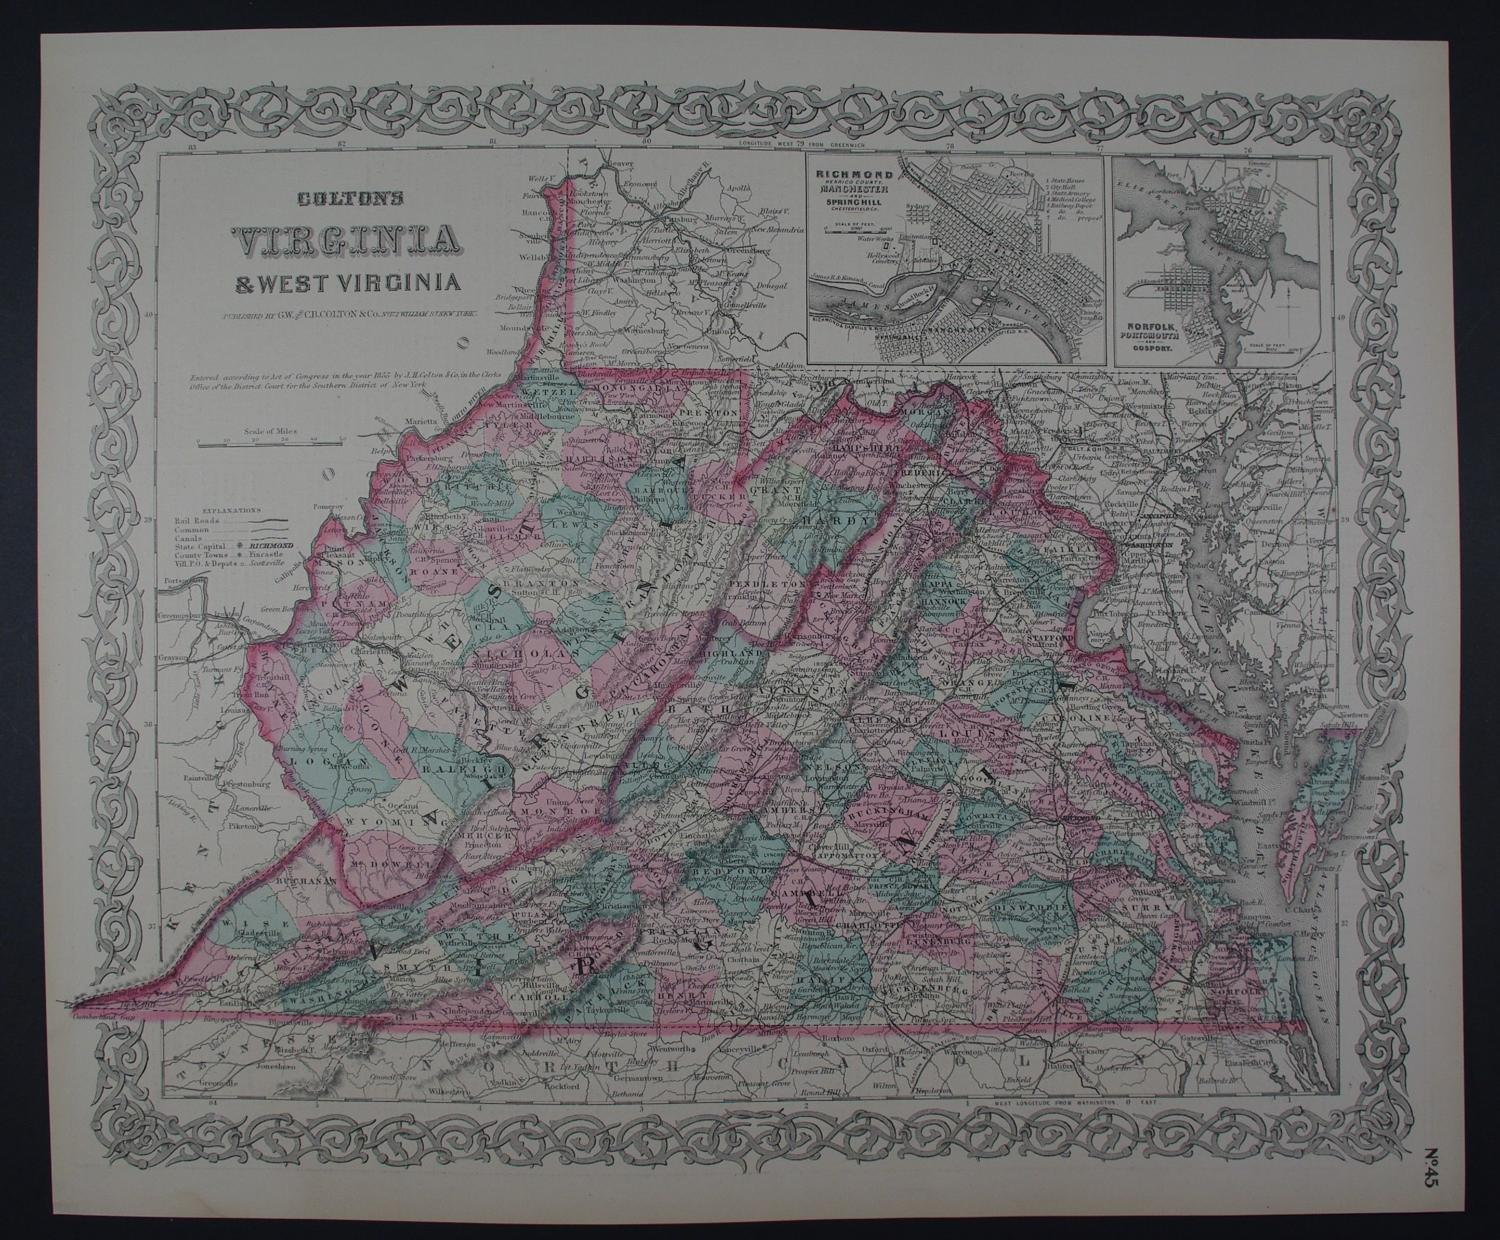 Virginia and West Virginia by G.W. Colton